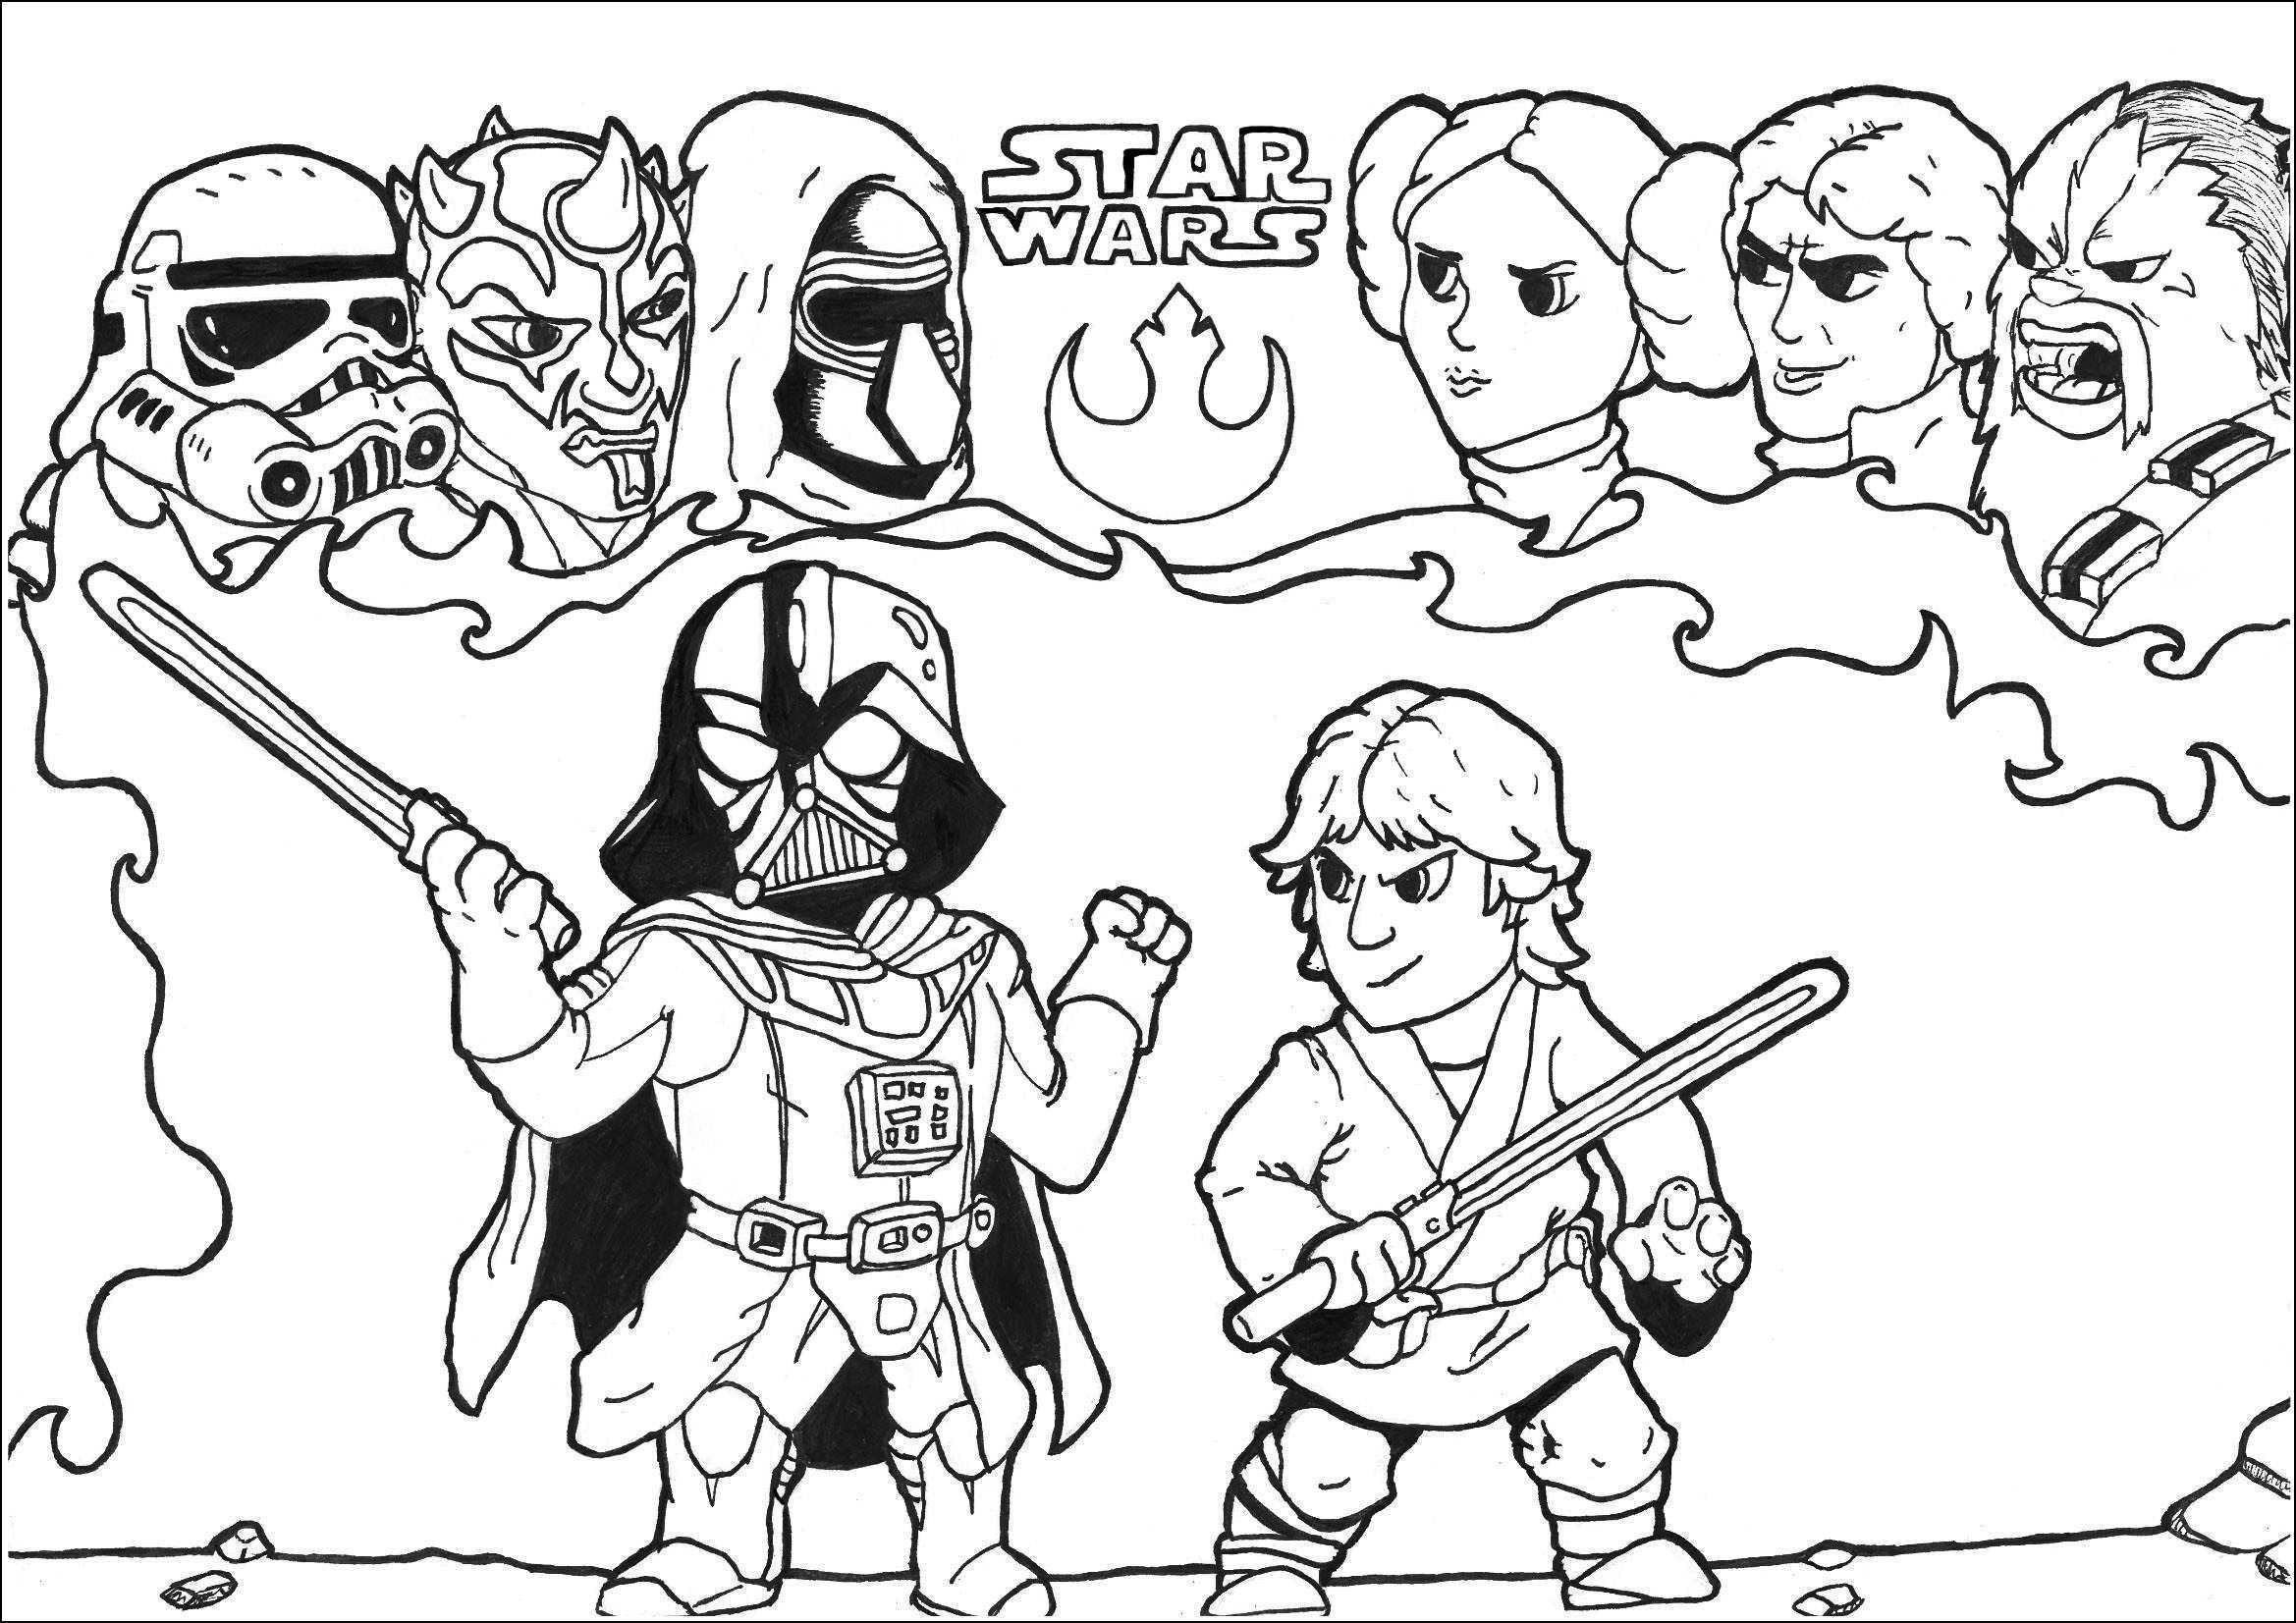 Star Wars Coloring Sheets Elegant Ausmalbilder Angry Birds Angry Bird Star Wars Coloring Page In 2020 Star Wars Coloring Sheet Star Wars Coloring Book Star Wars Colors